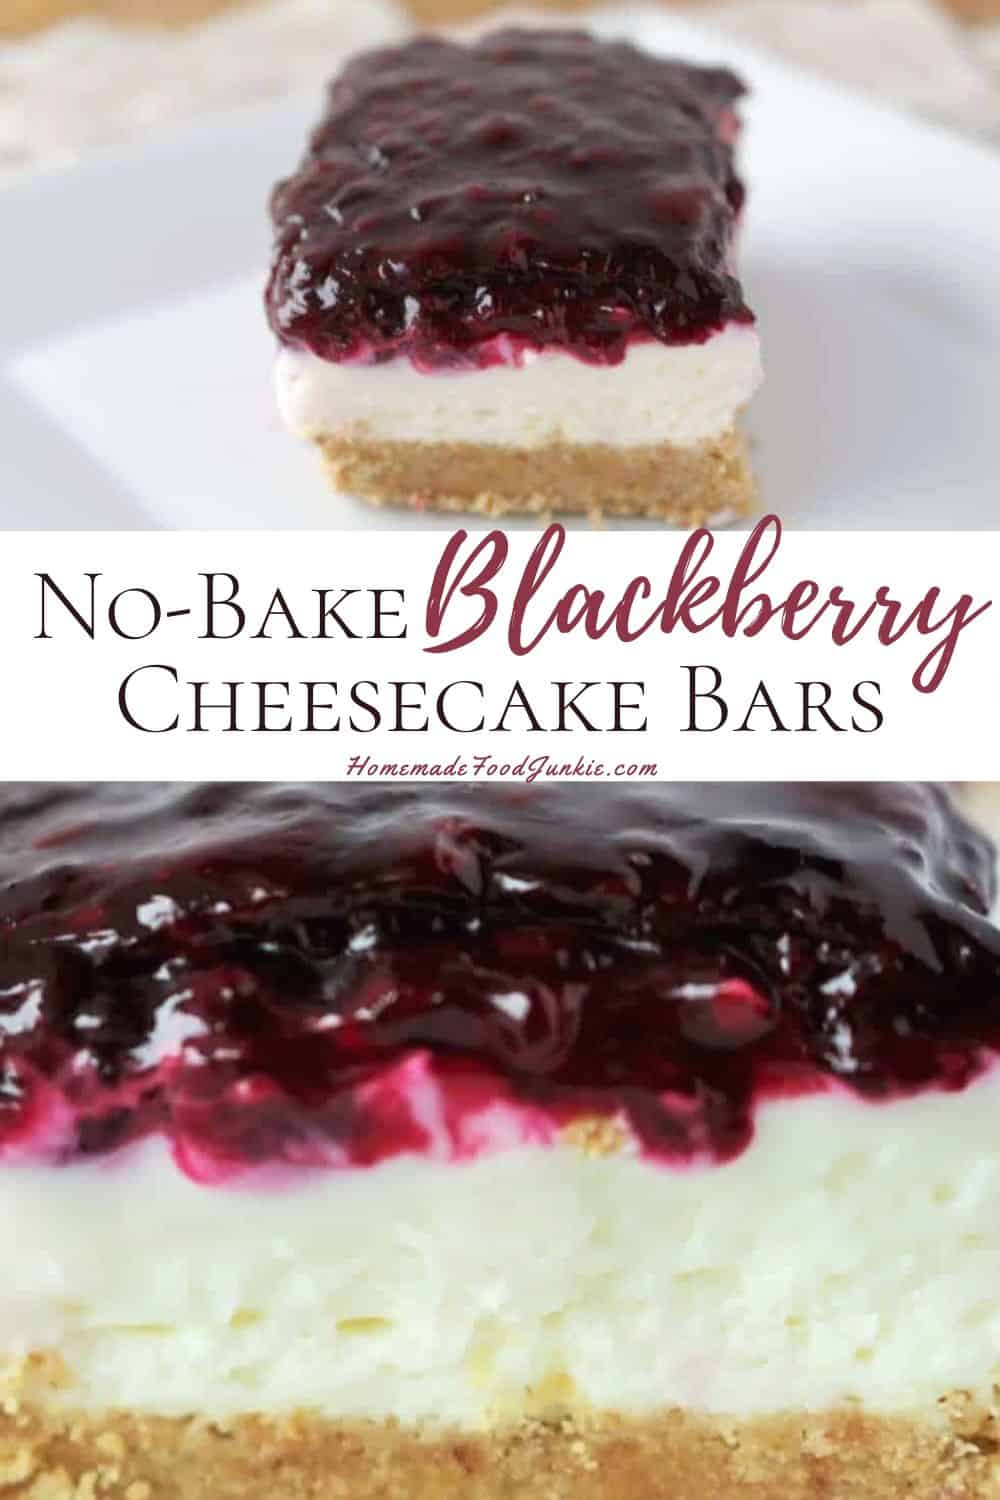 no-bake blackberry cheesecake bars-pin image